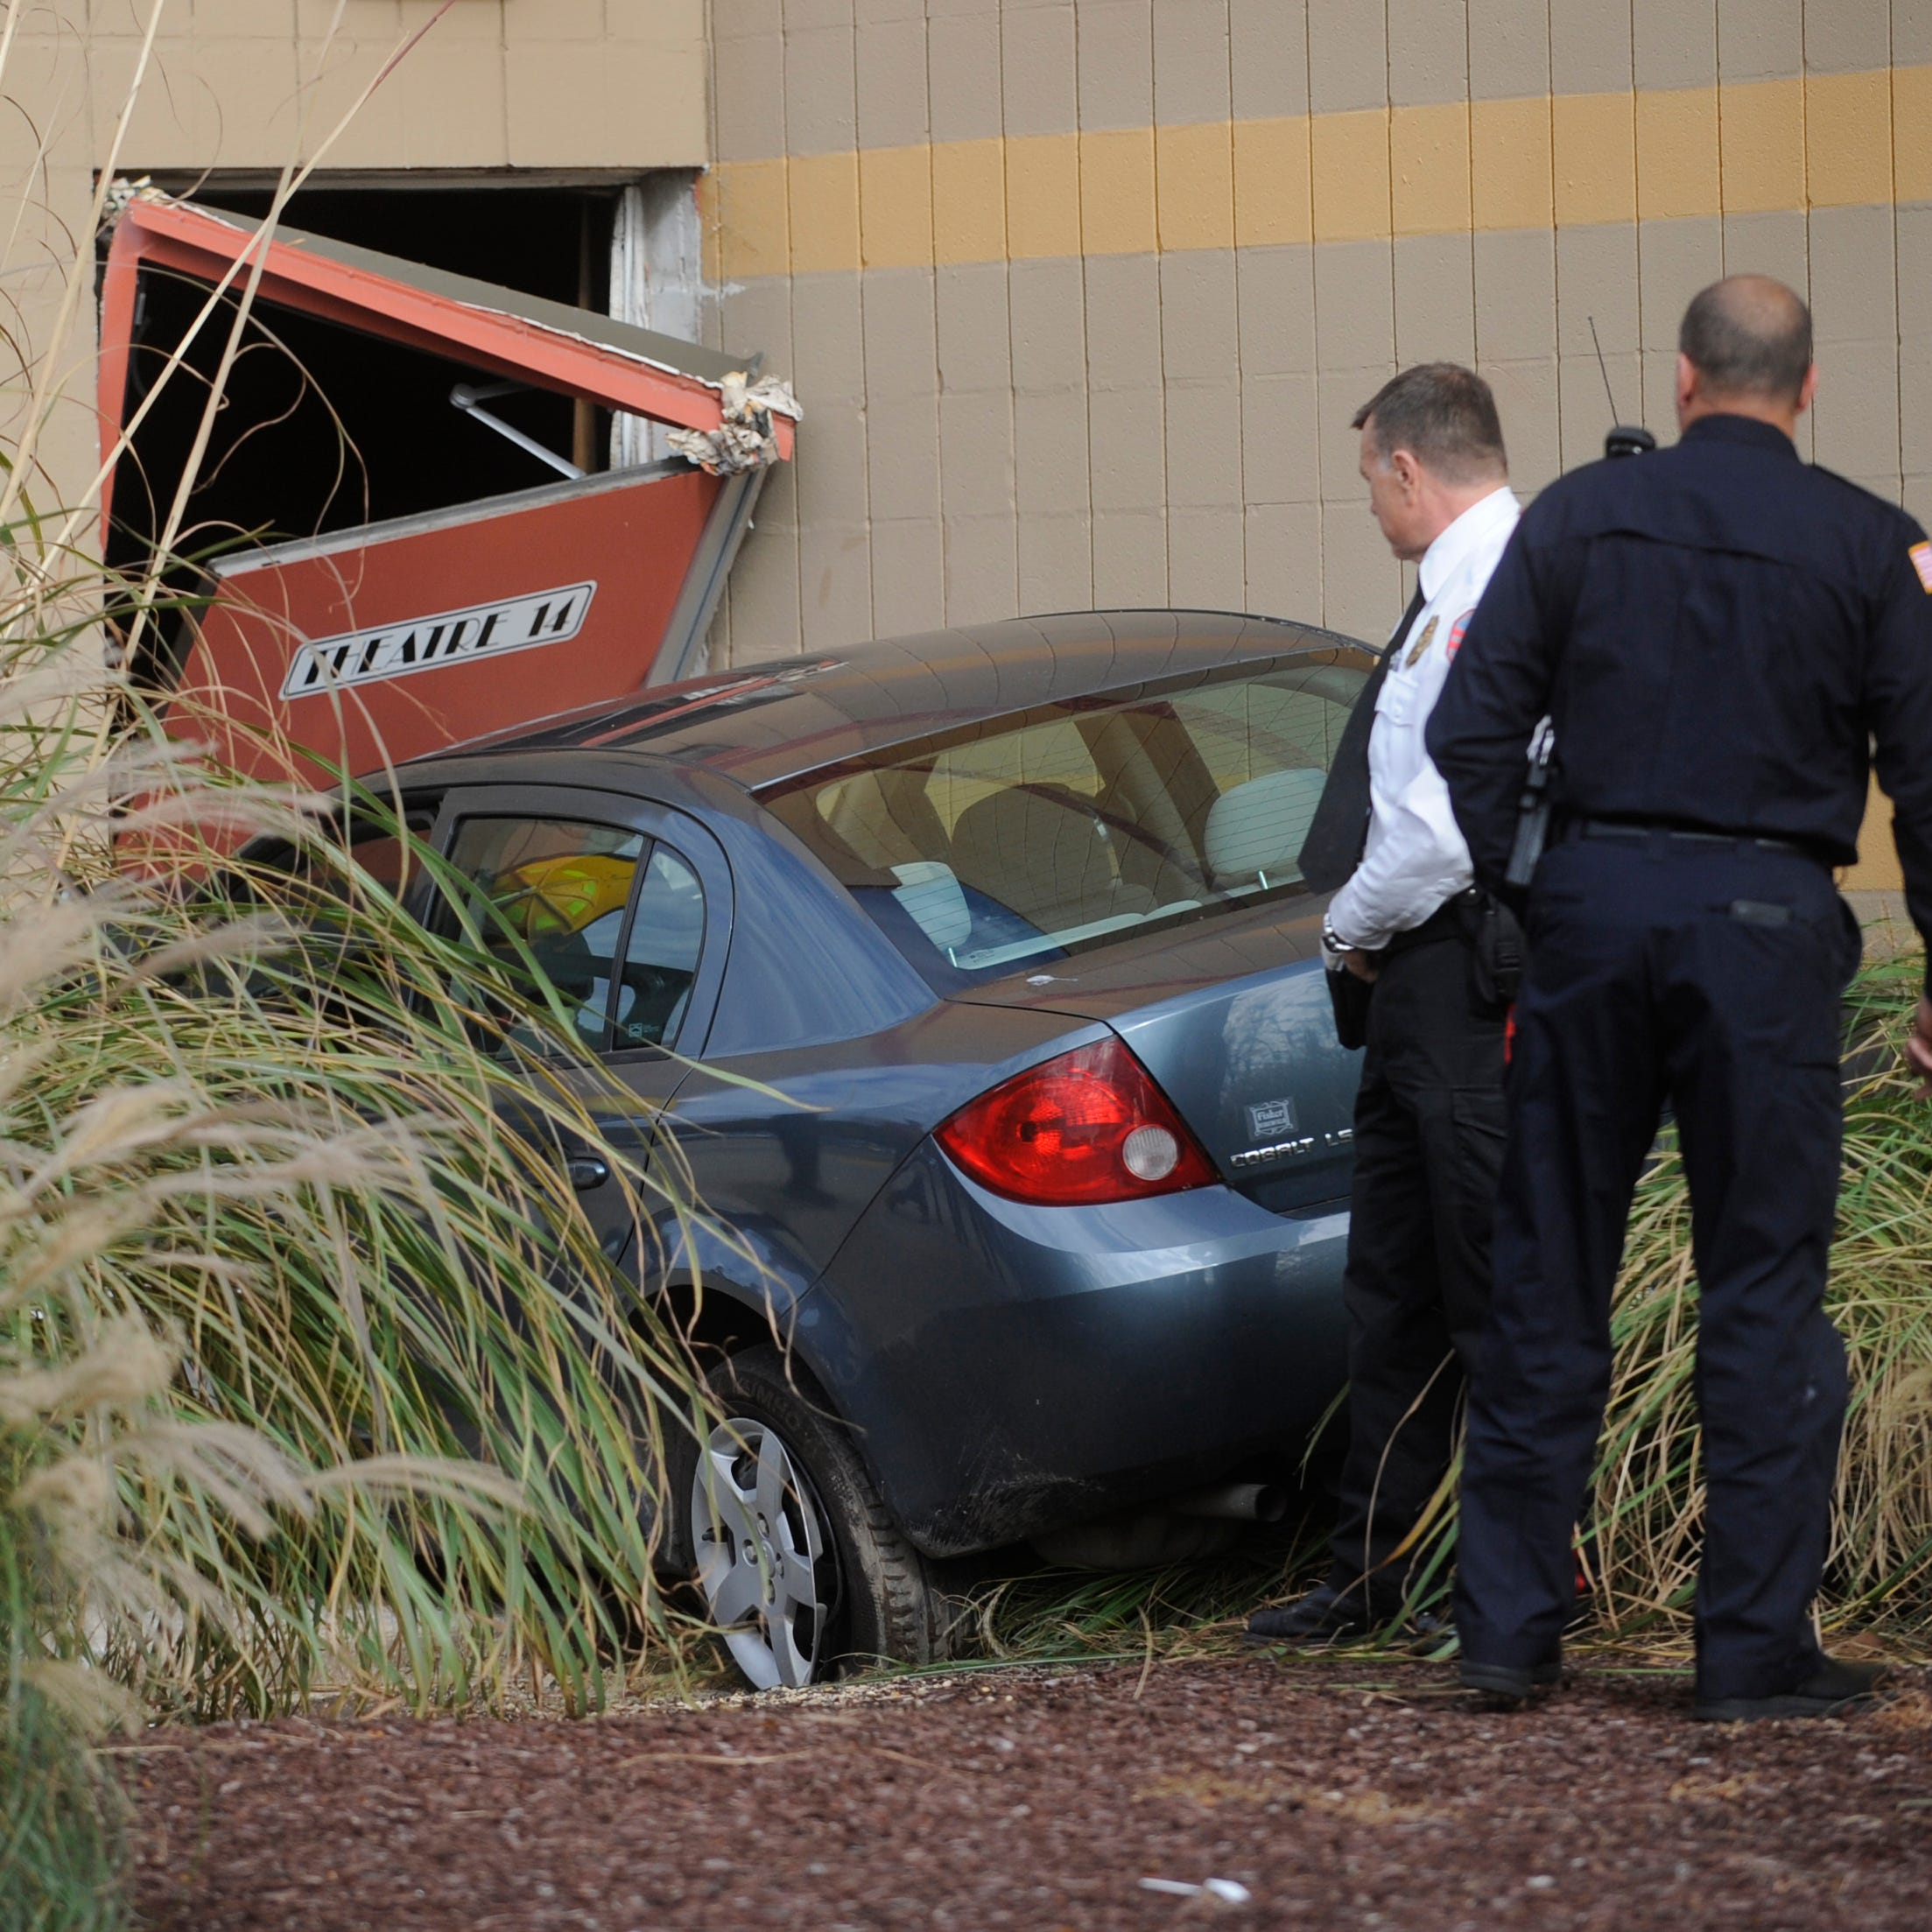 Car zooms into Vineland cinema, police investigating